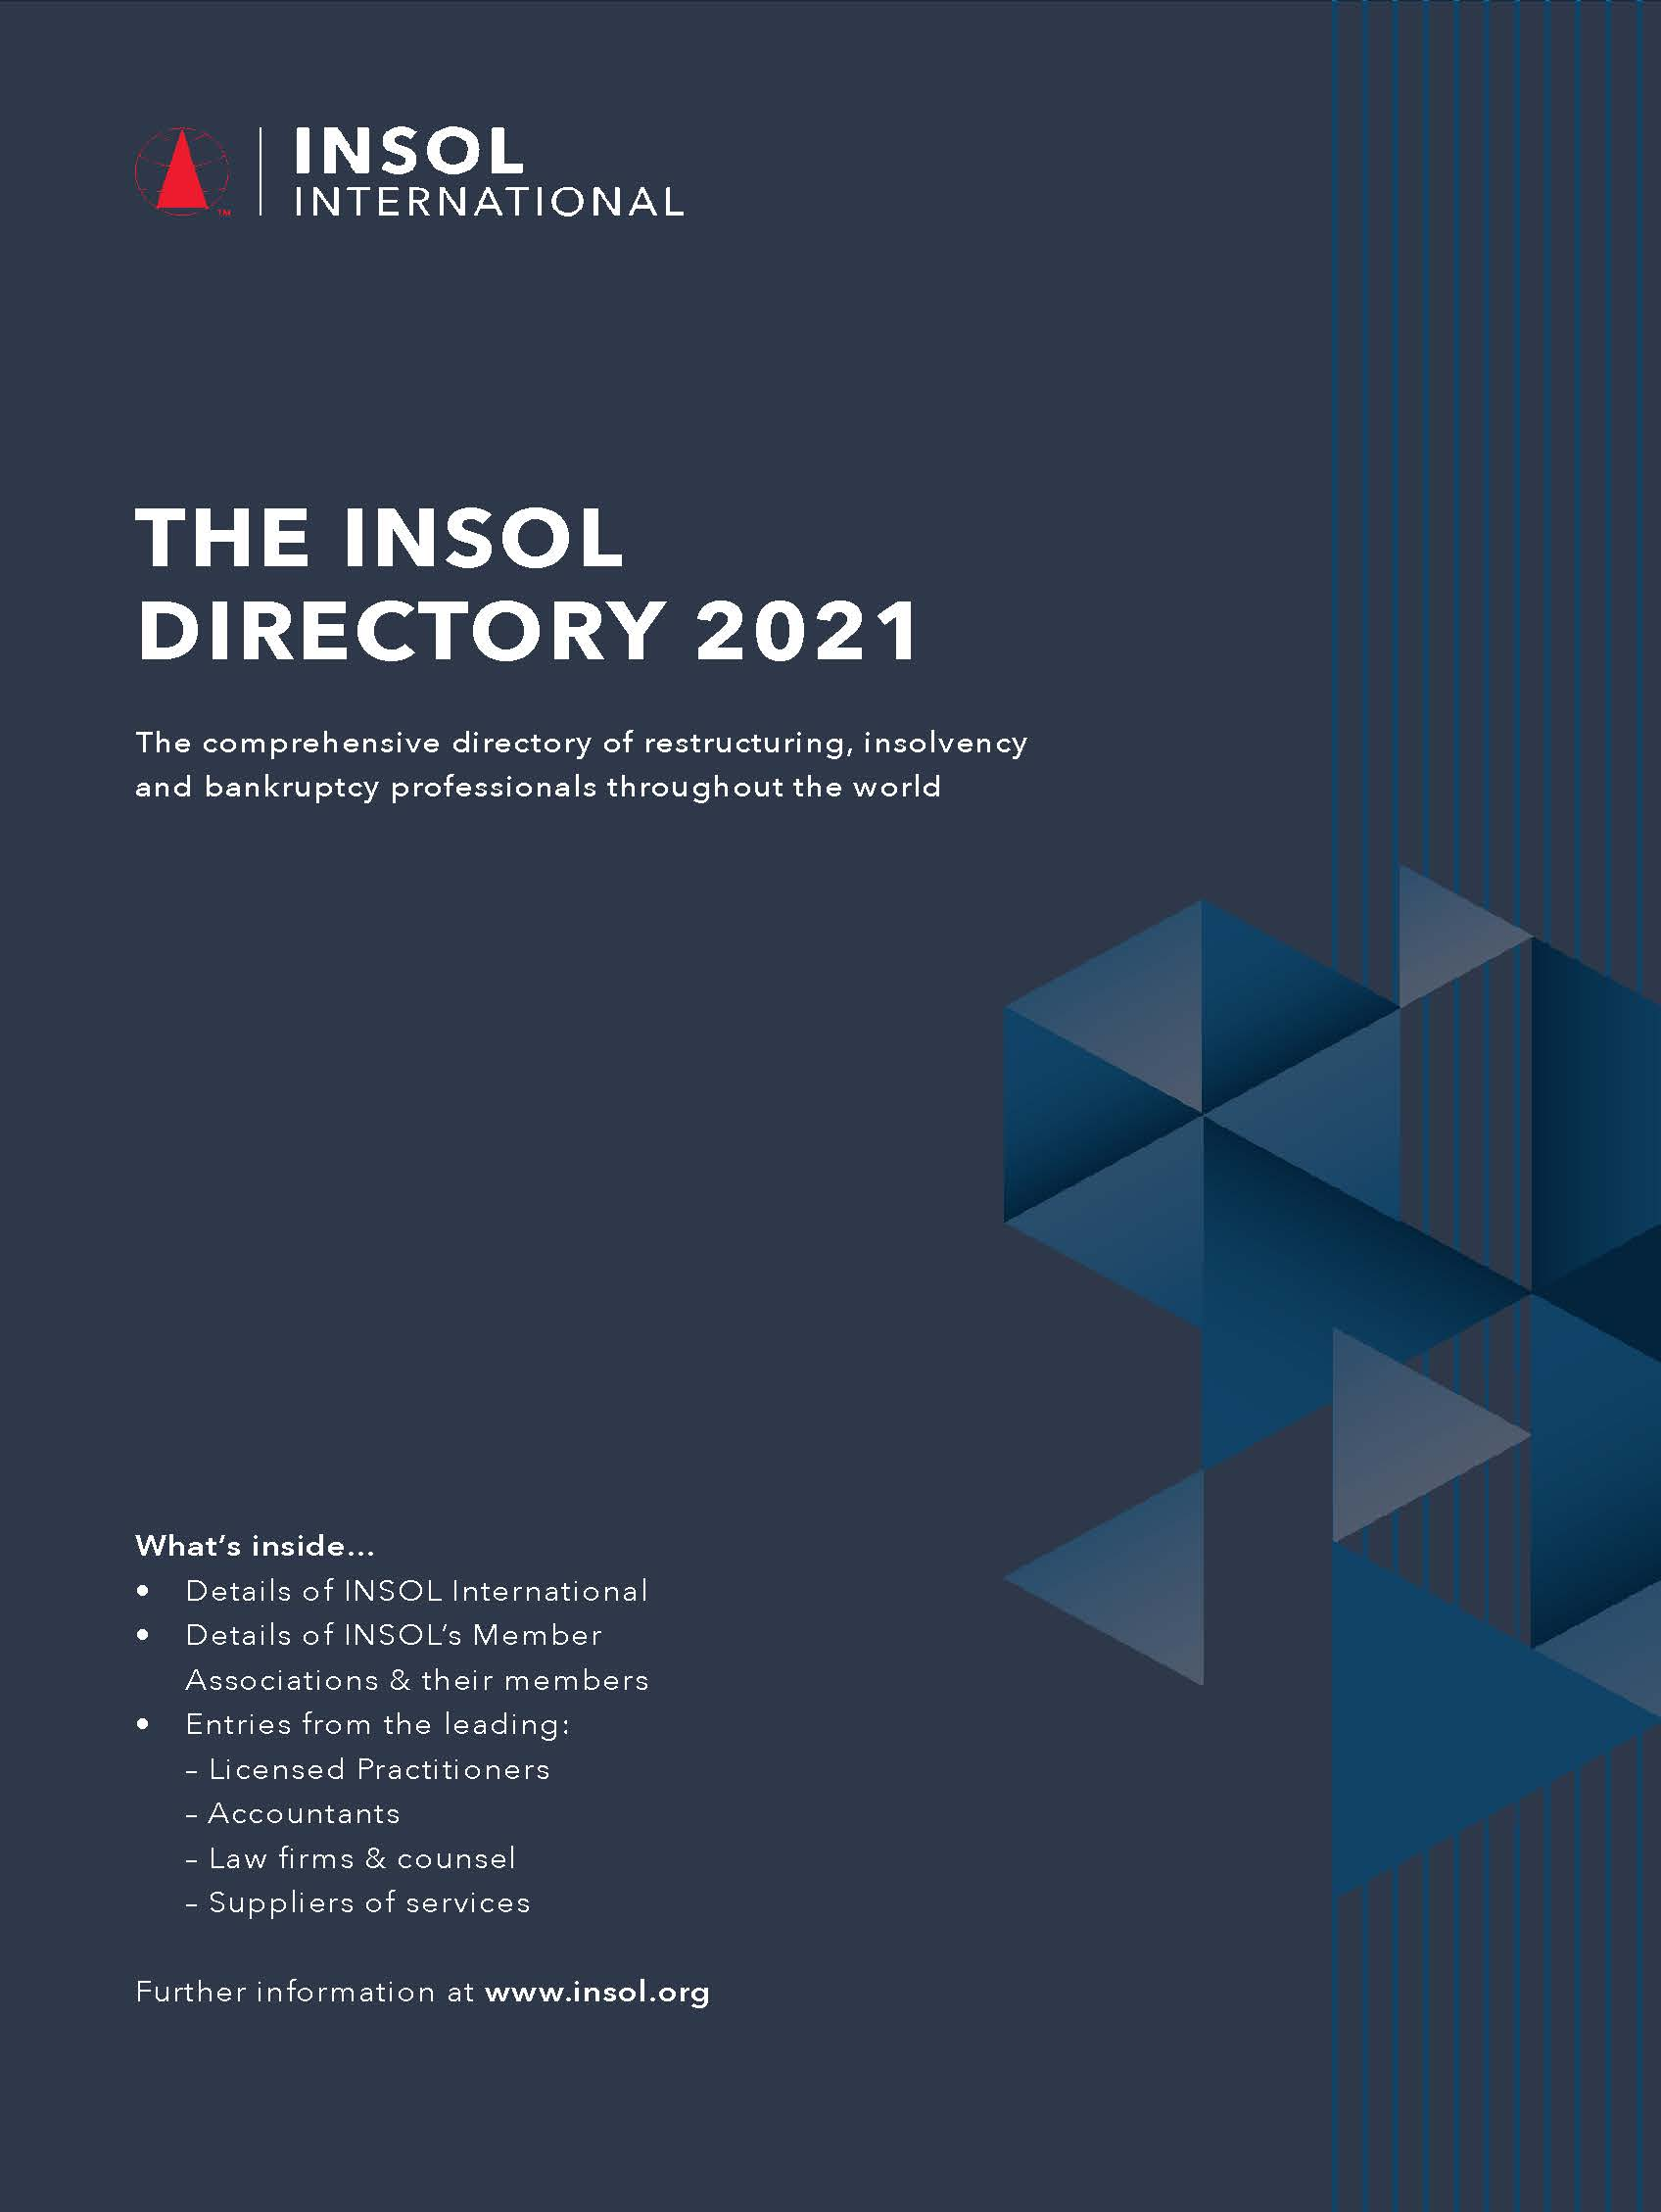 2021 INSOL Directory